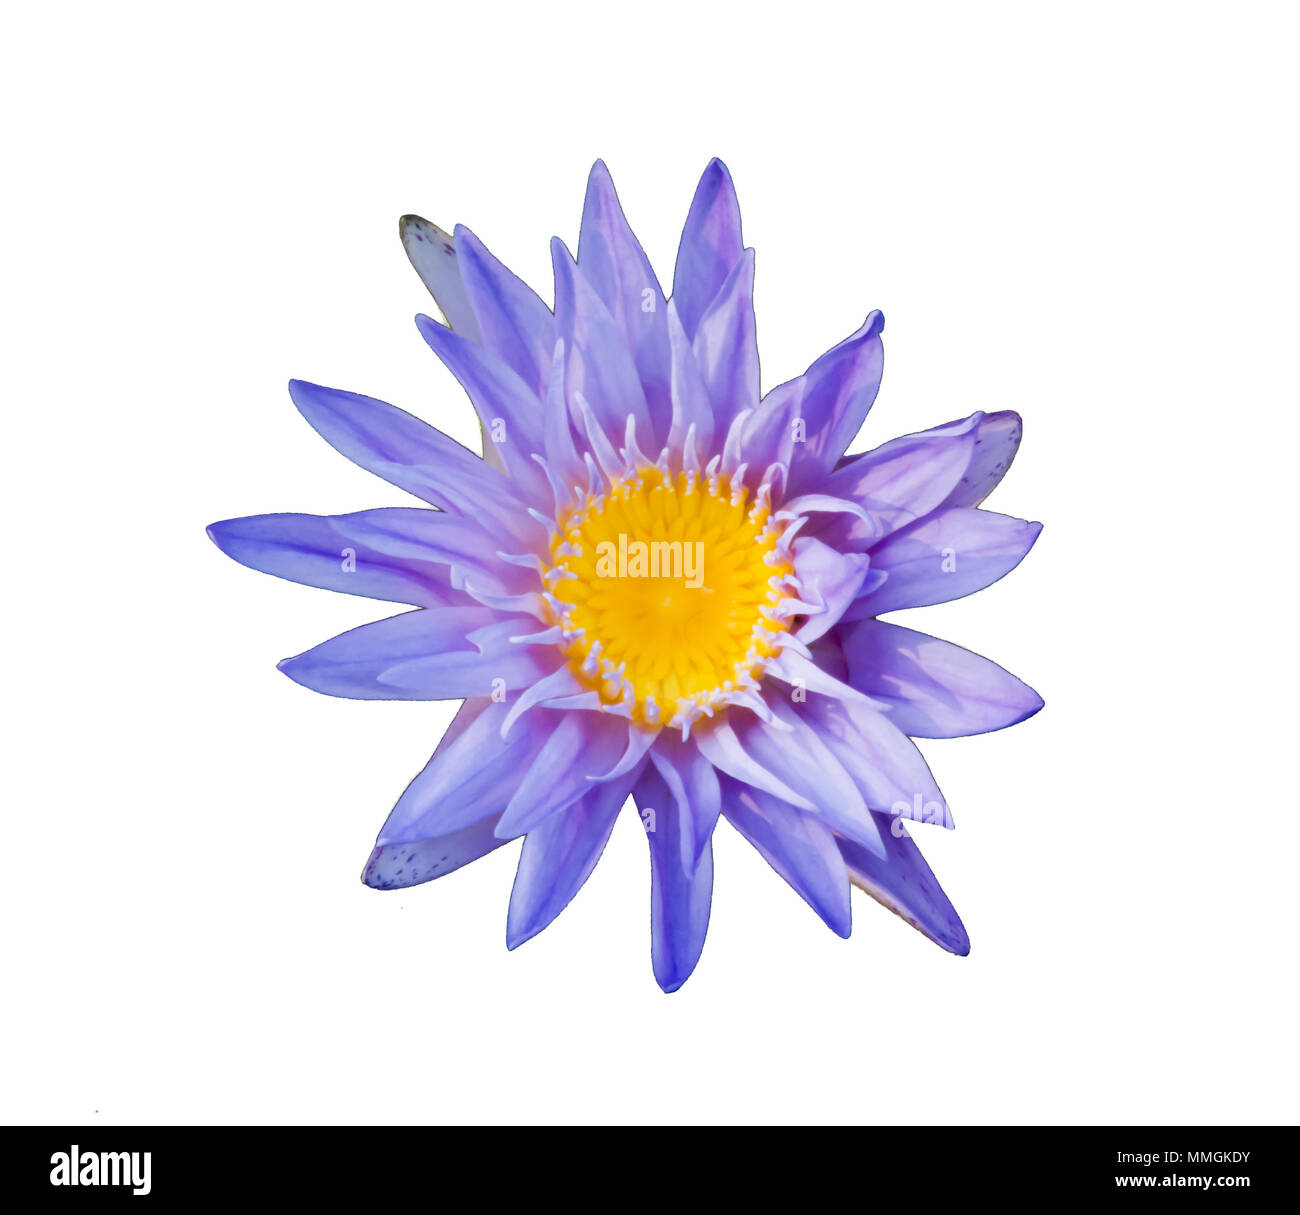 The lotus is national flower for thailandindiakampuchea and bengal the lotus is national flower for thailandindiakampuchea and bengal lotus flower in asia is a important culture symbol mightylinksfo